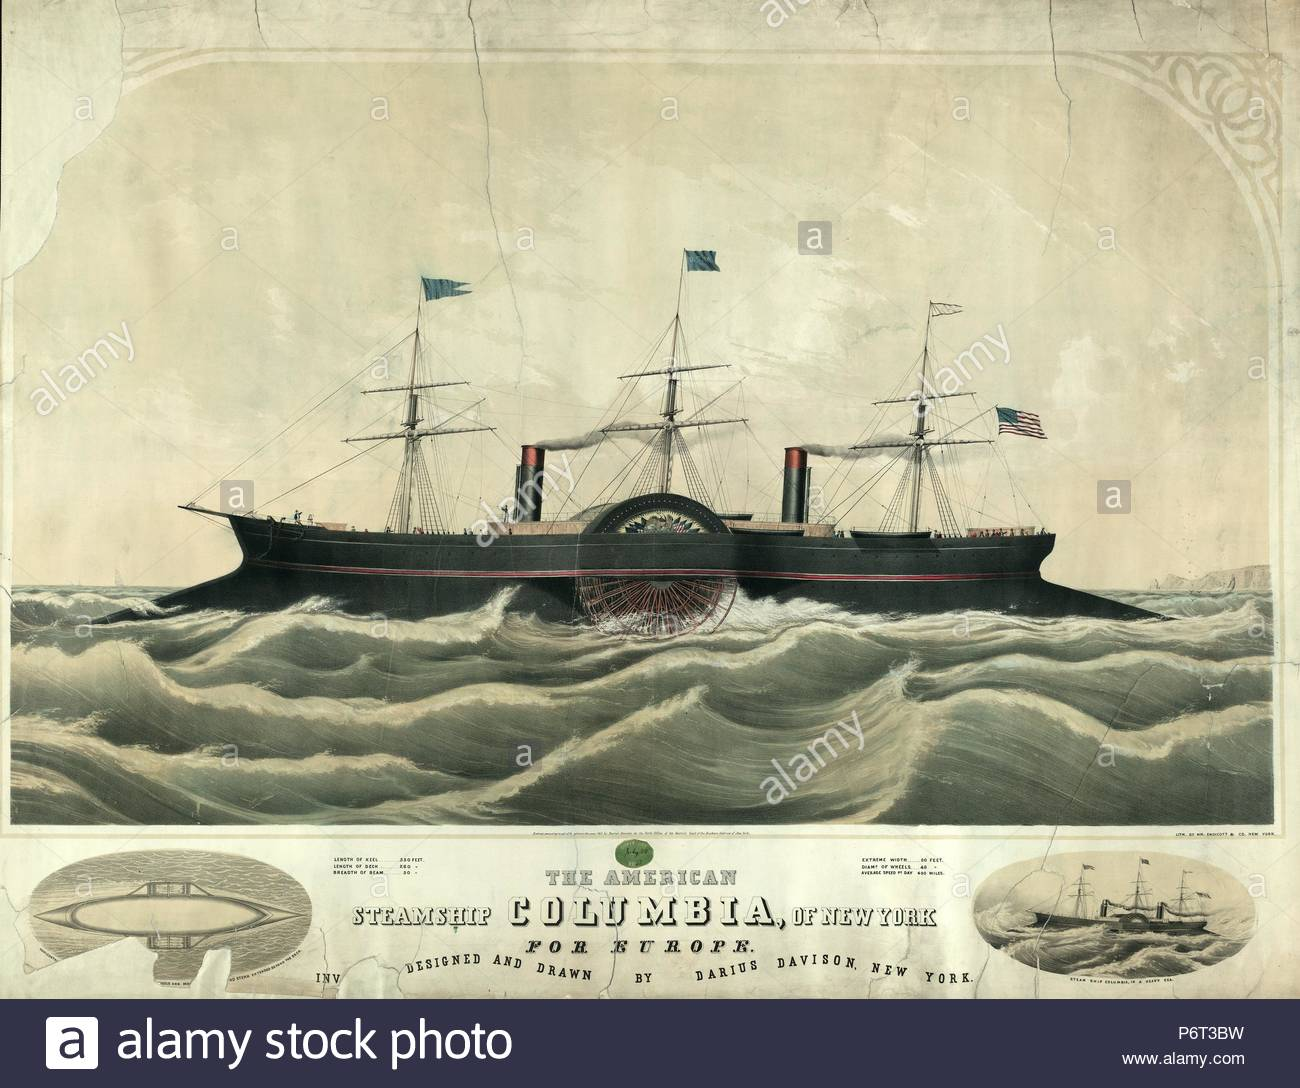 The American steamship Columbia, of New York for Europe; W. Endicott & Co., printmaker; New York : Wm. Endicott & Co., c1852.; 1 print : lithograph, with tint stone, hand-colored ; 39 3/4 x 30 5/8 in. - Stock Image